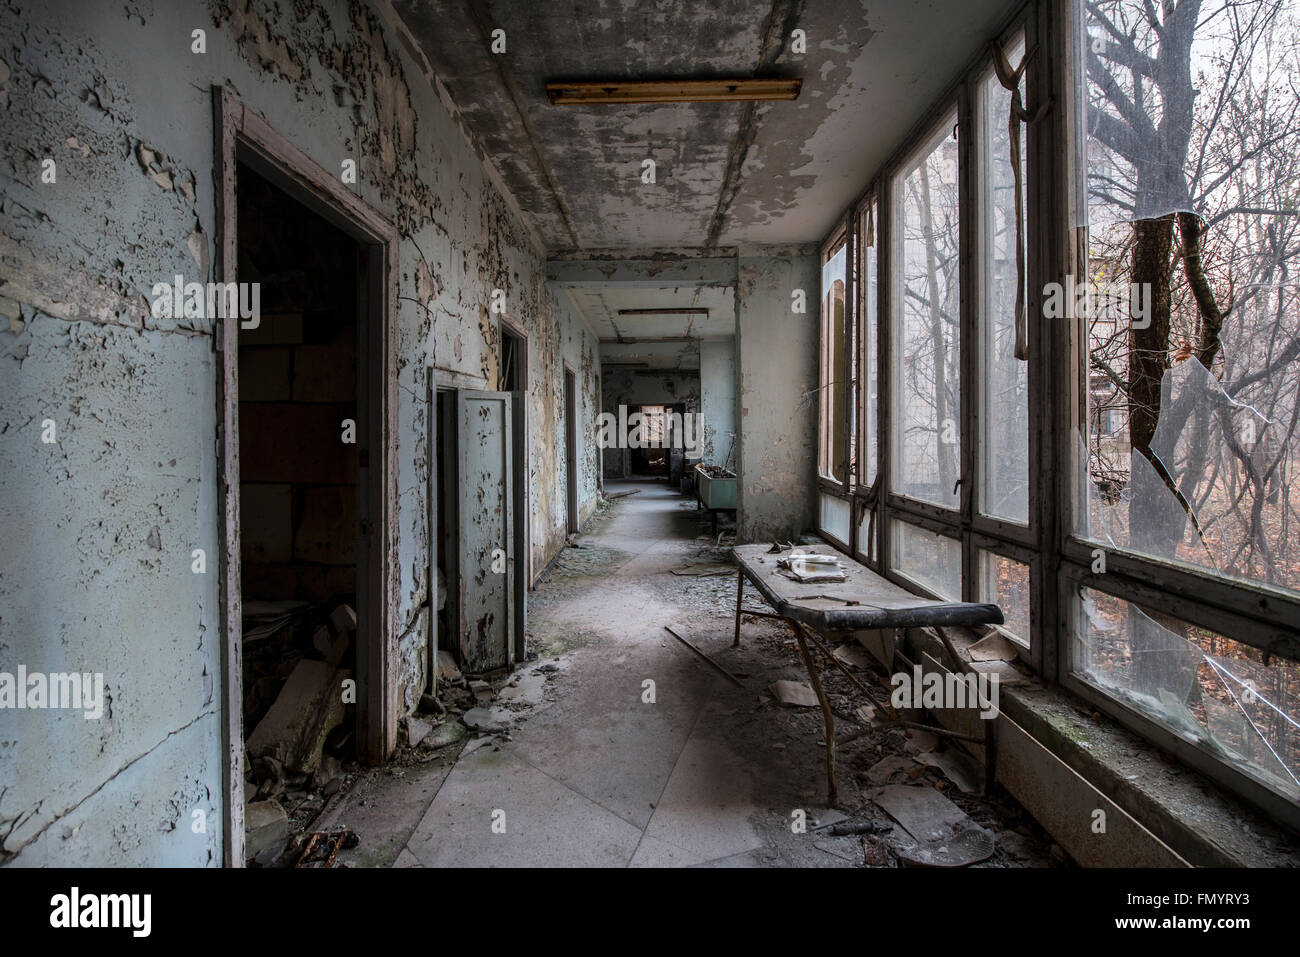 Hospital corridor in Pripyat, Chernobyl scene of 1986 nuclear disaster - Stock Image